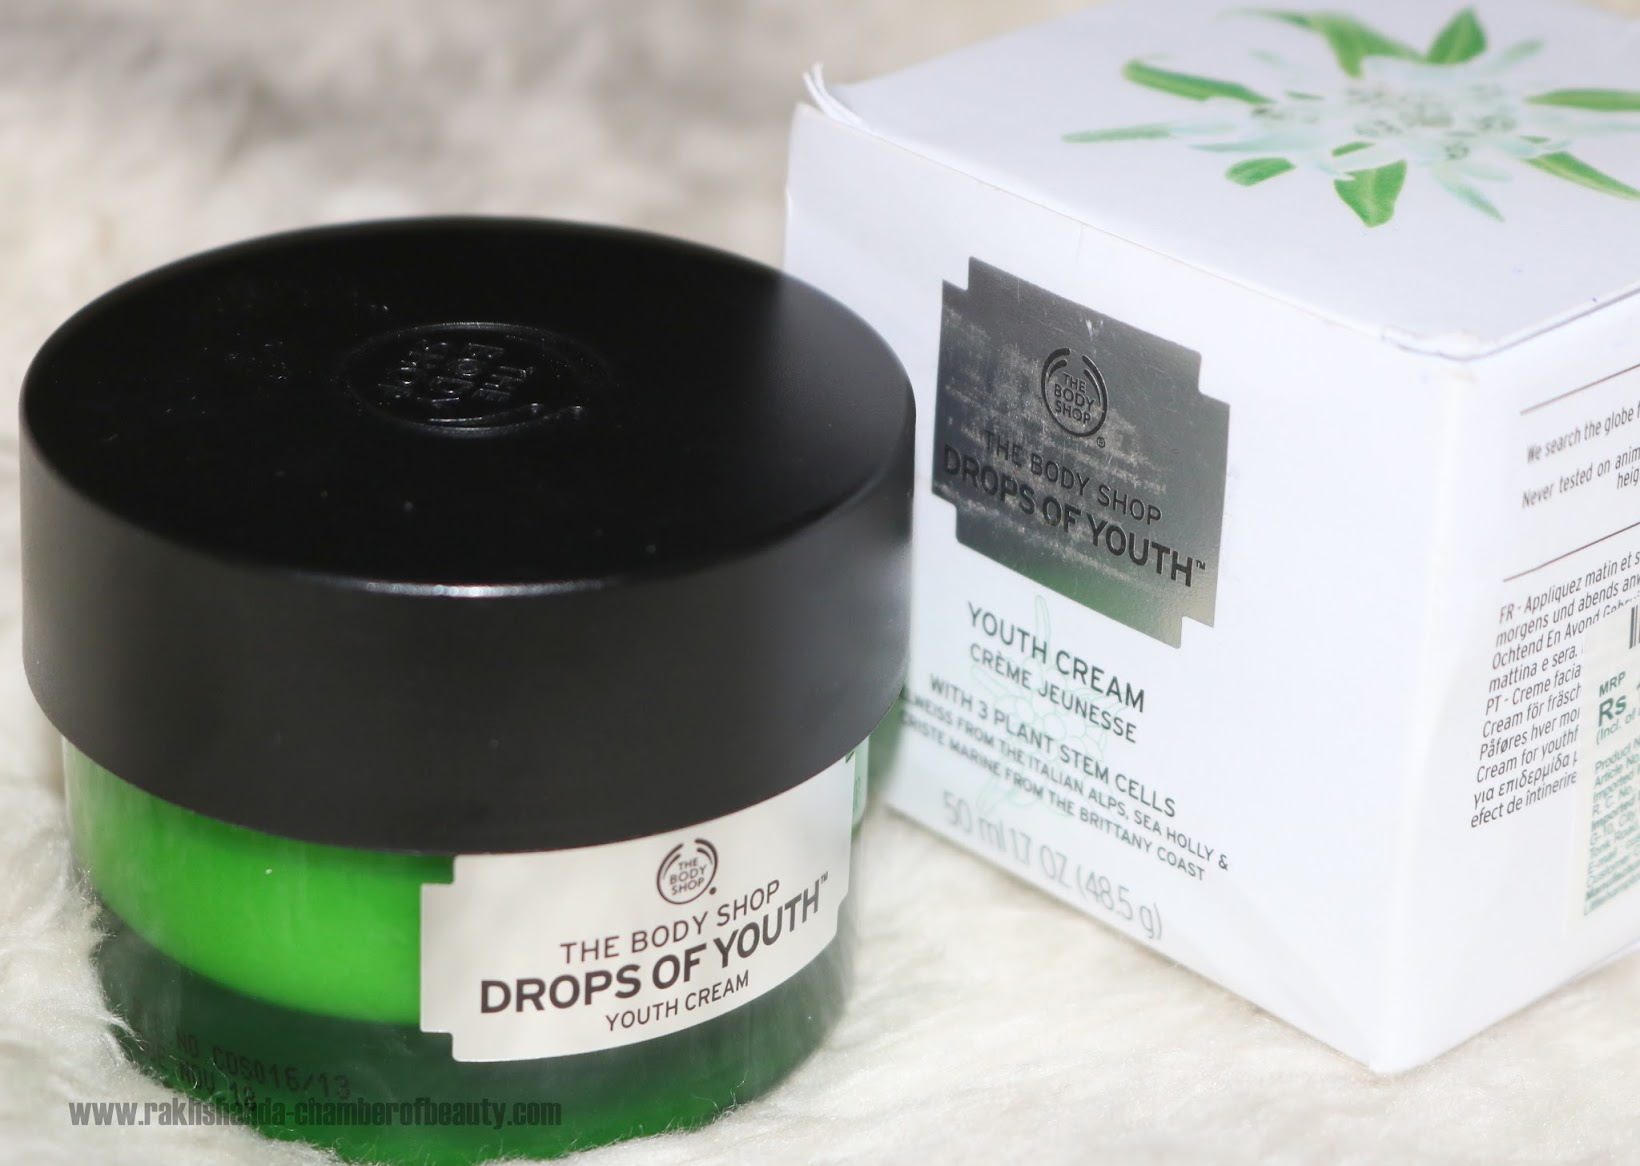 Indian beauty blogger, review, skincare, The Body Shop, The Body Shop Drops of Youth Day Cream review, The Body Shop Drops of Youth, best moisturizing creams in India, day cream, The Body Shop Drops of Youth day cream swatch